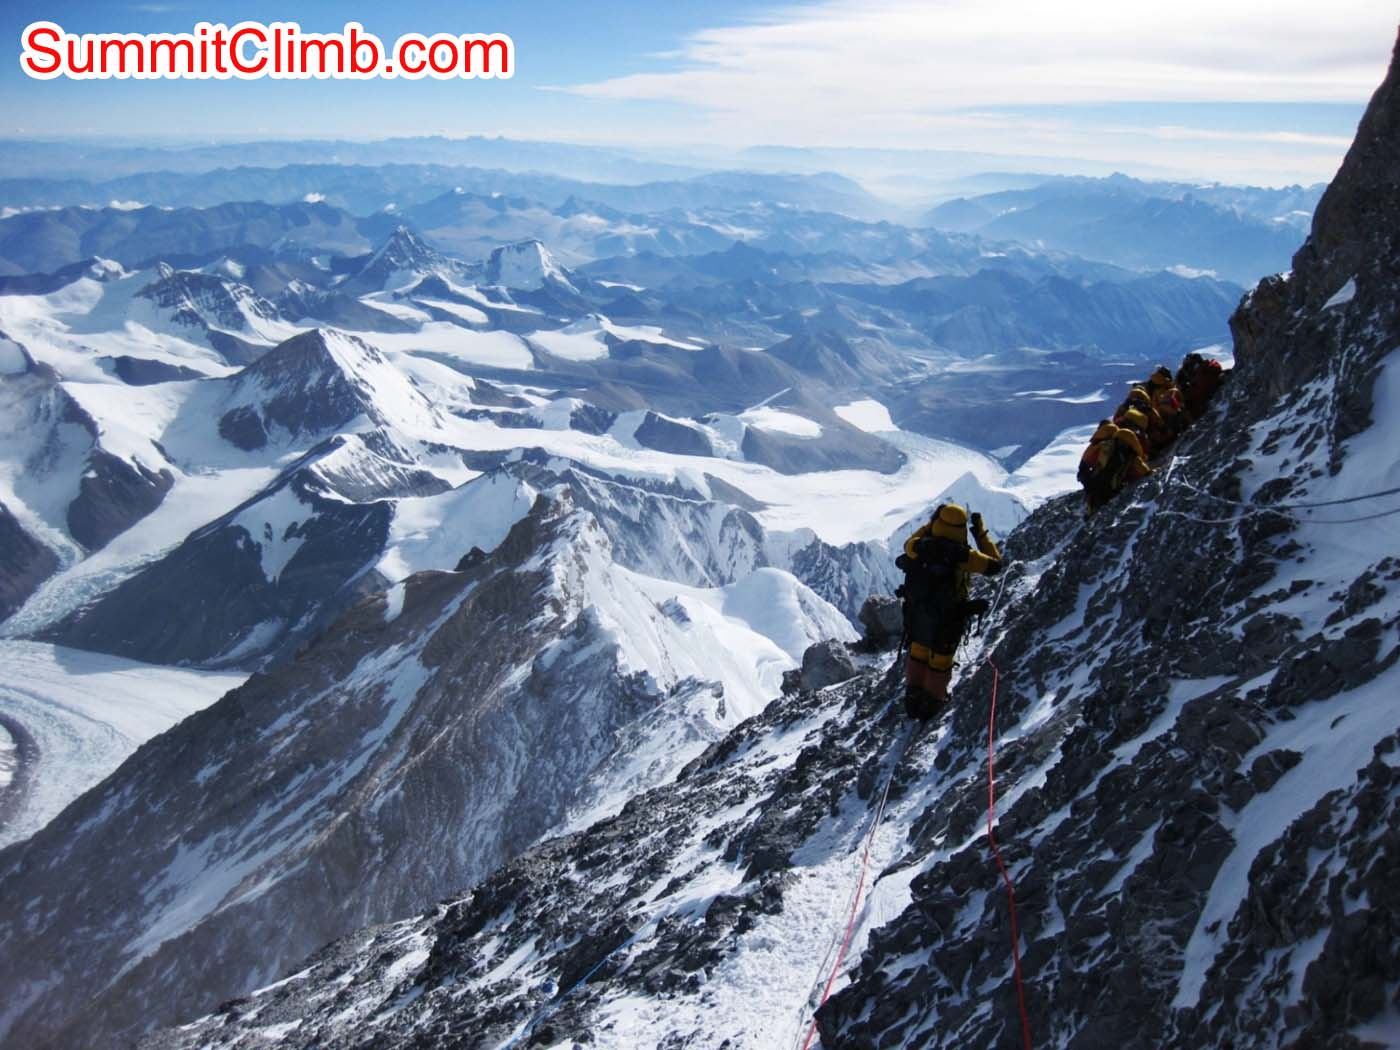 Climber descending Everest between 3rd step and 2nd step - photo Mia Graeffe